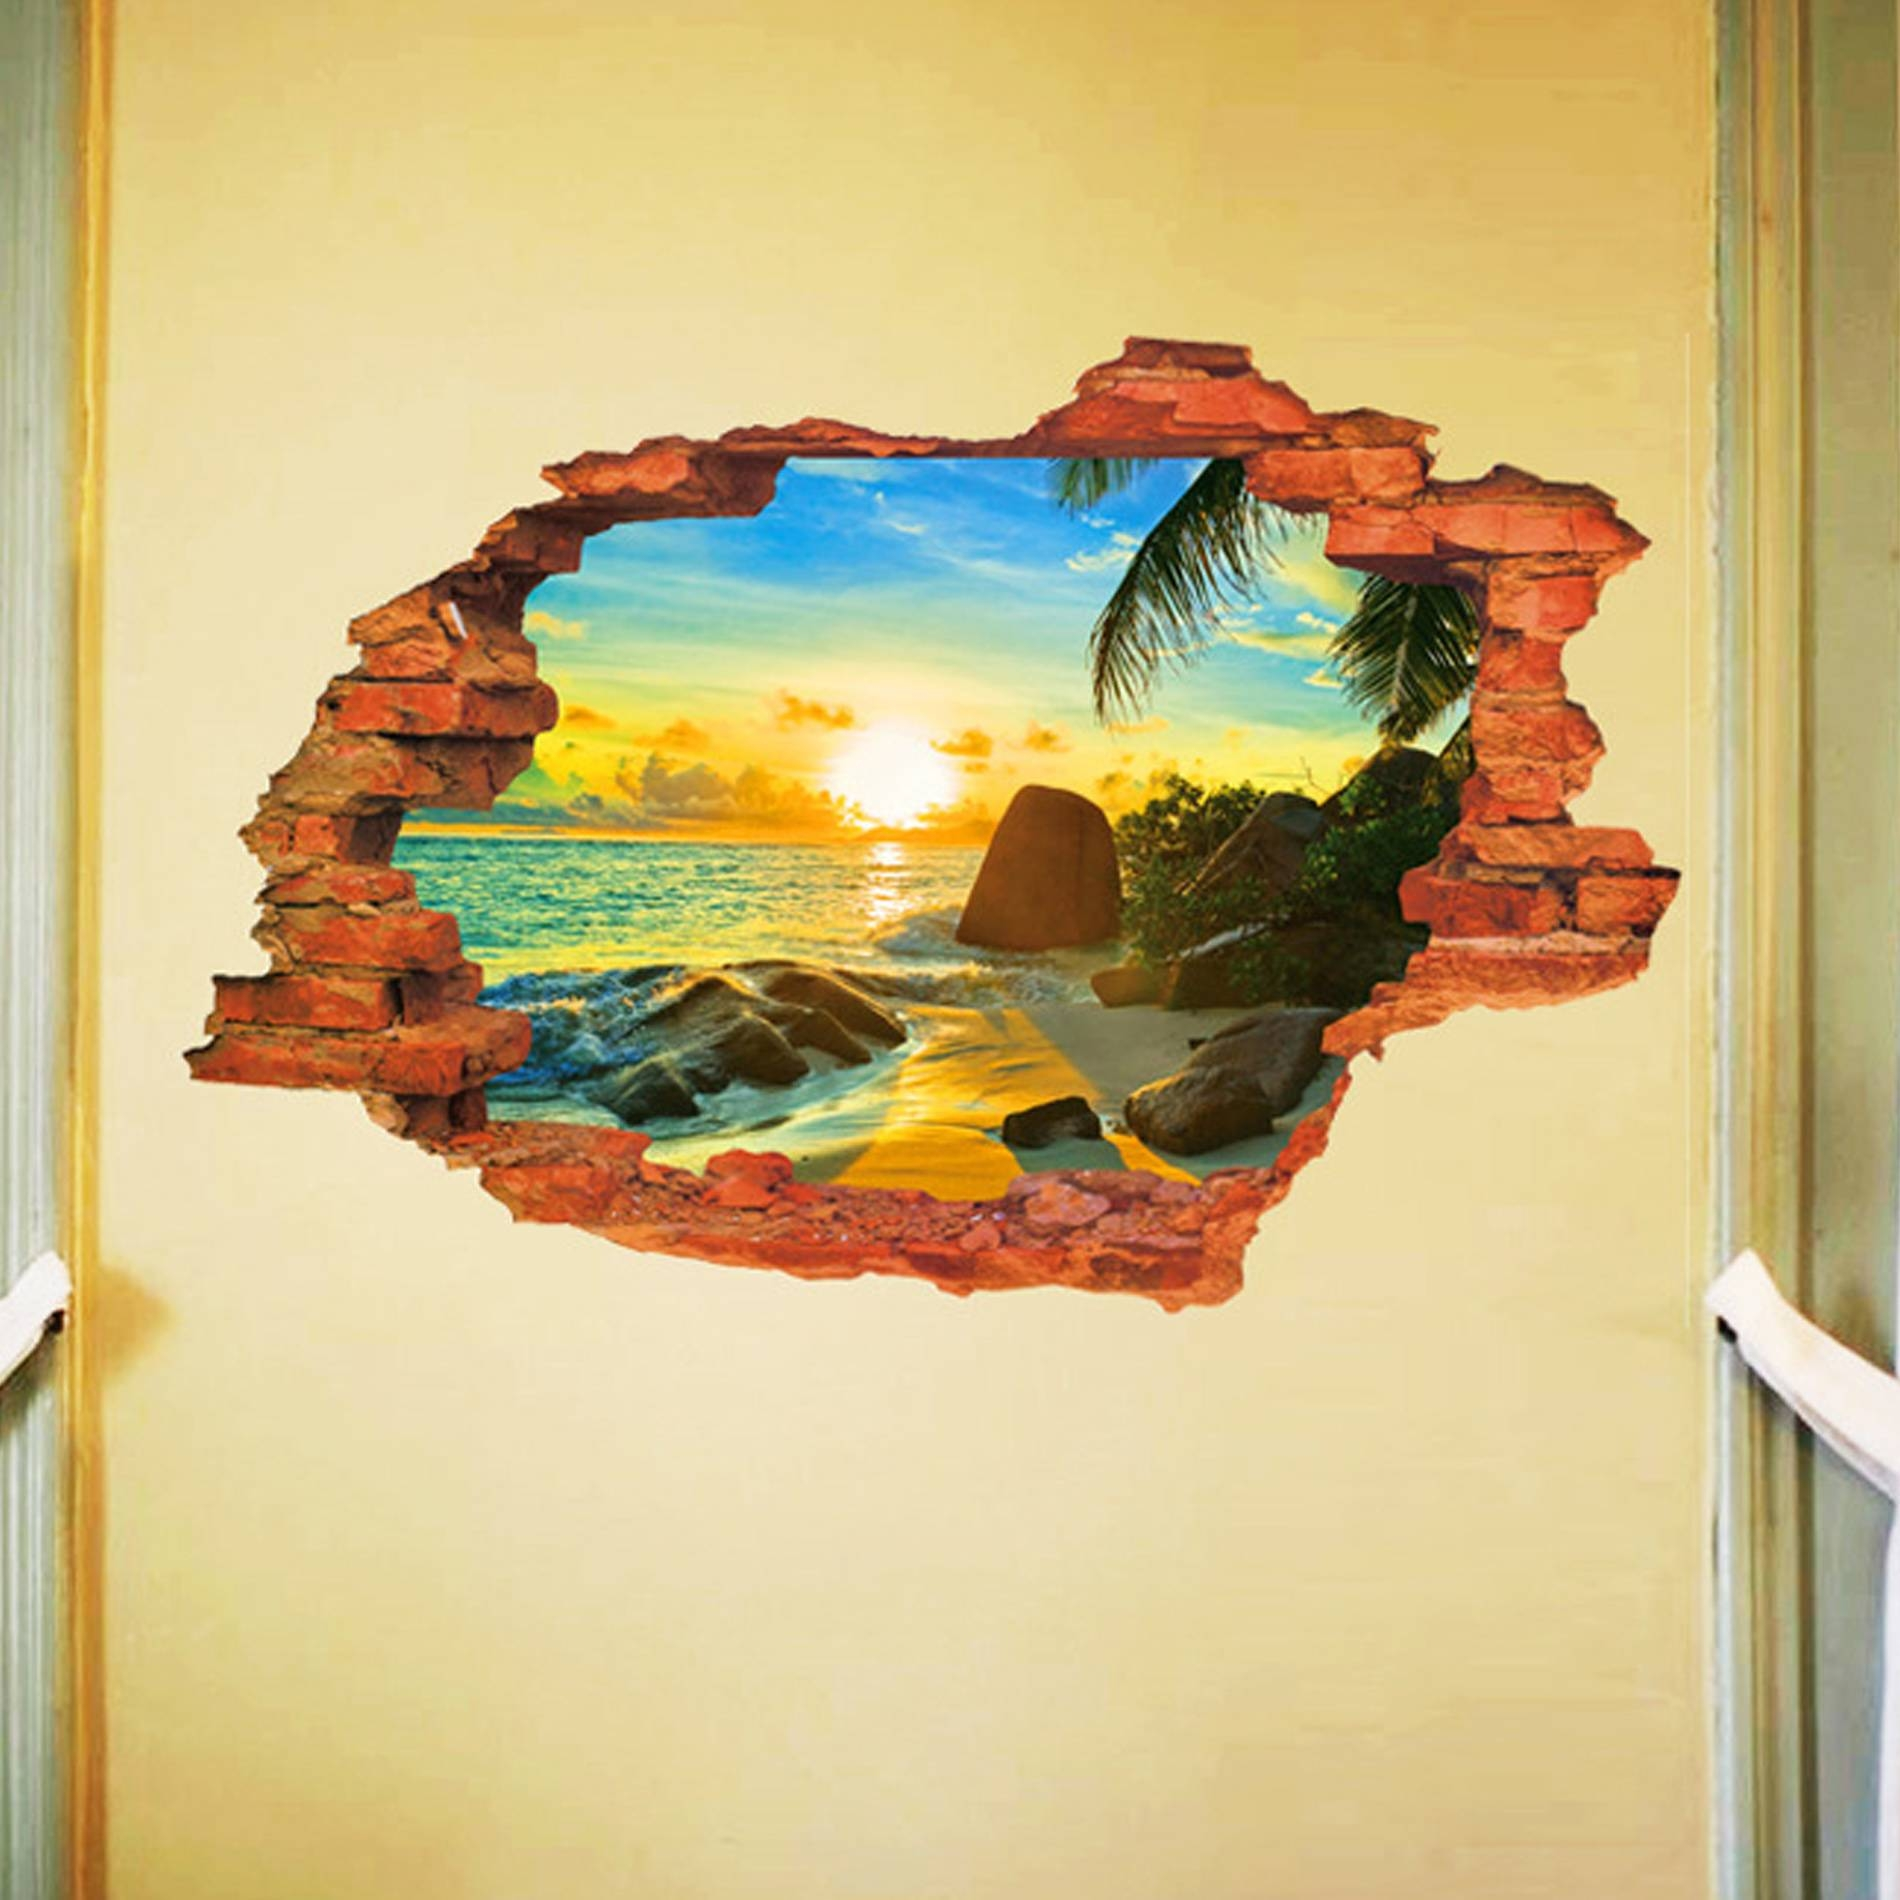 Removable 3d Broken Wall Stickers Art Vinyl Mural Home Decor + Key For Latest Vinyl 3d Wall Art (View 5 of 20)